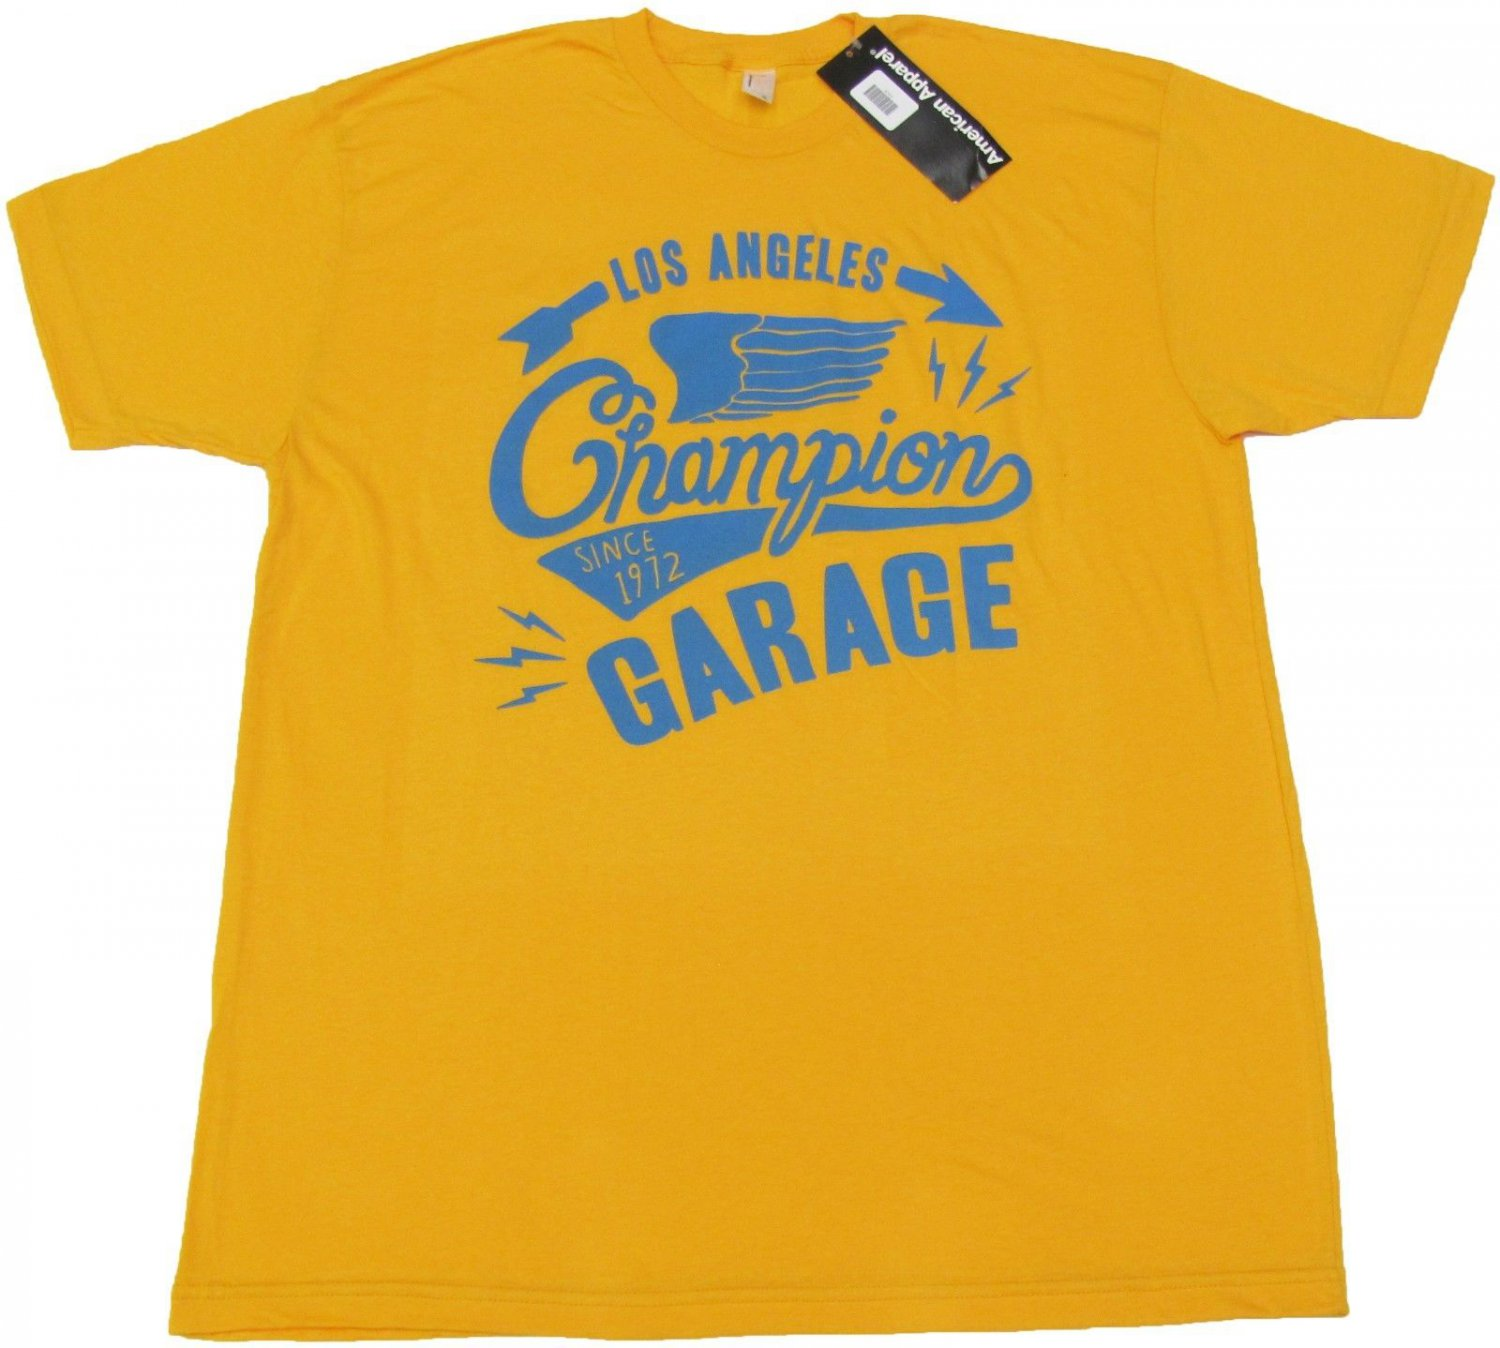 American Apparel Mens XL Los Angeles Champion Garage Tee Shirt Gold Yellow New